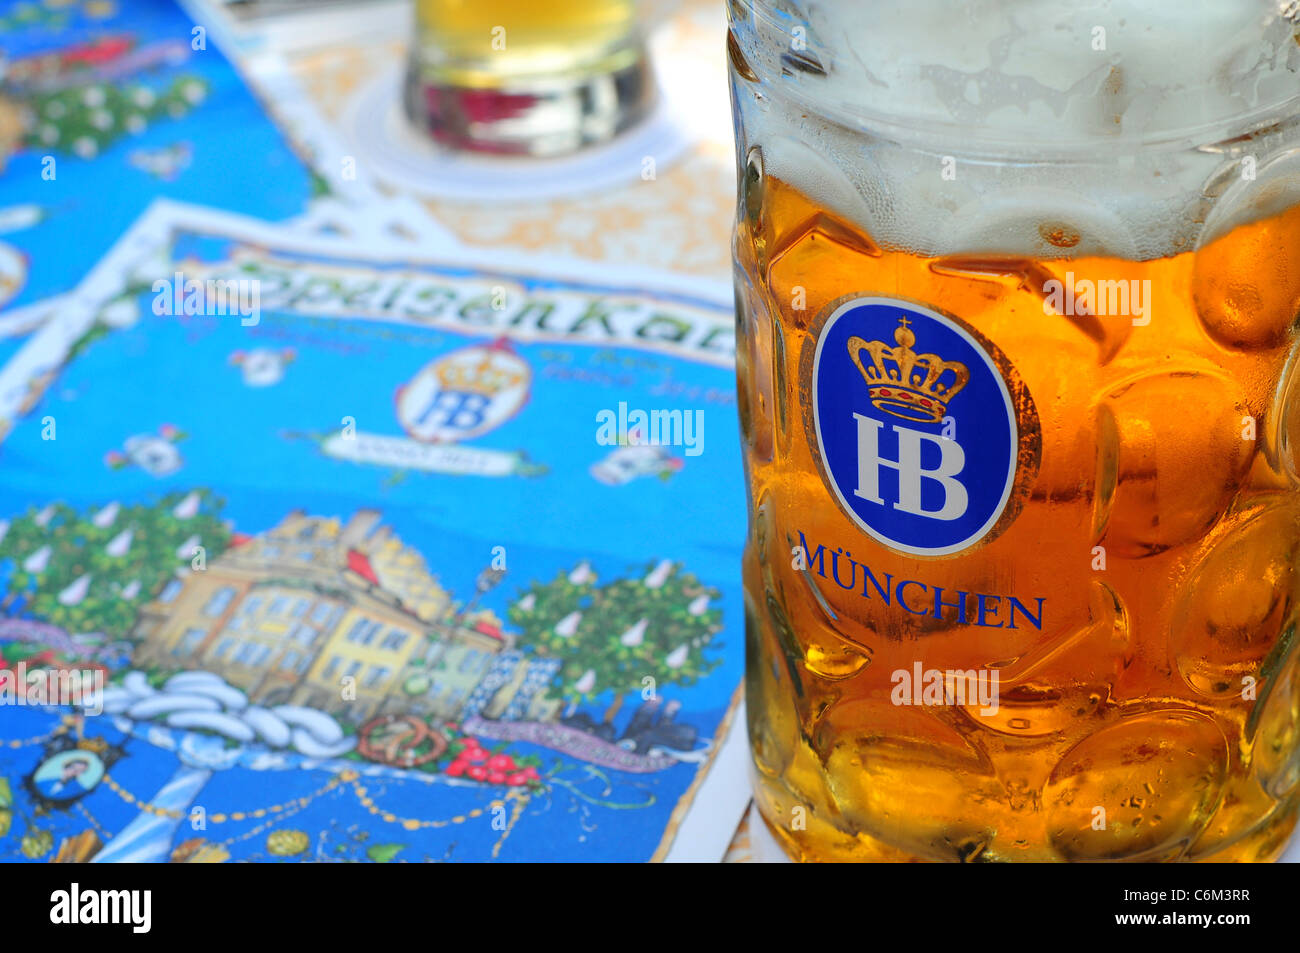 Beer stein at the Hofbrauhaus, Munich, Germany - Stock Image